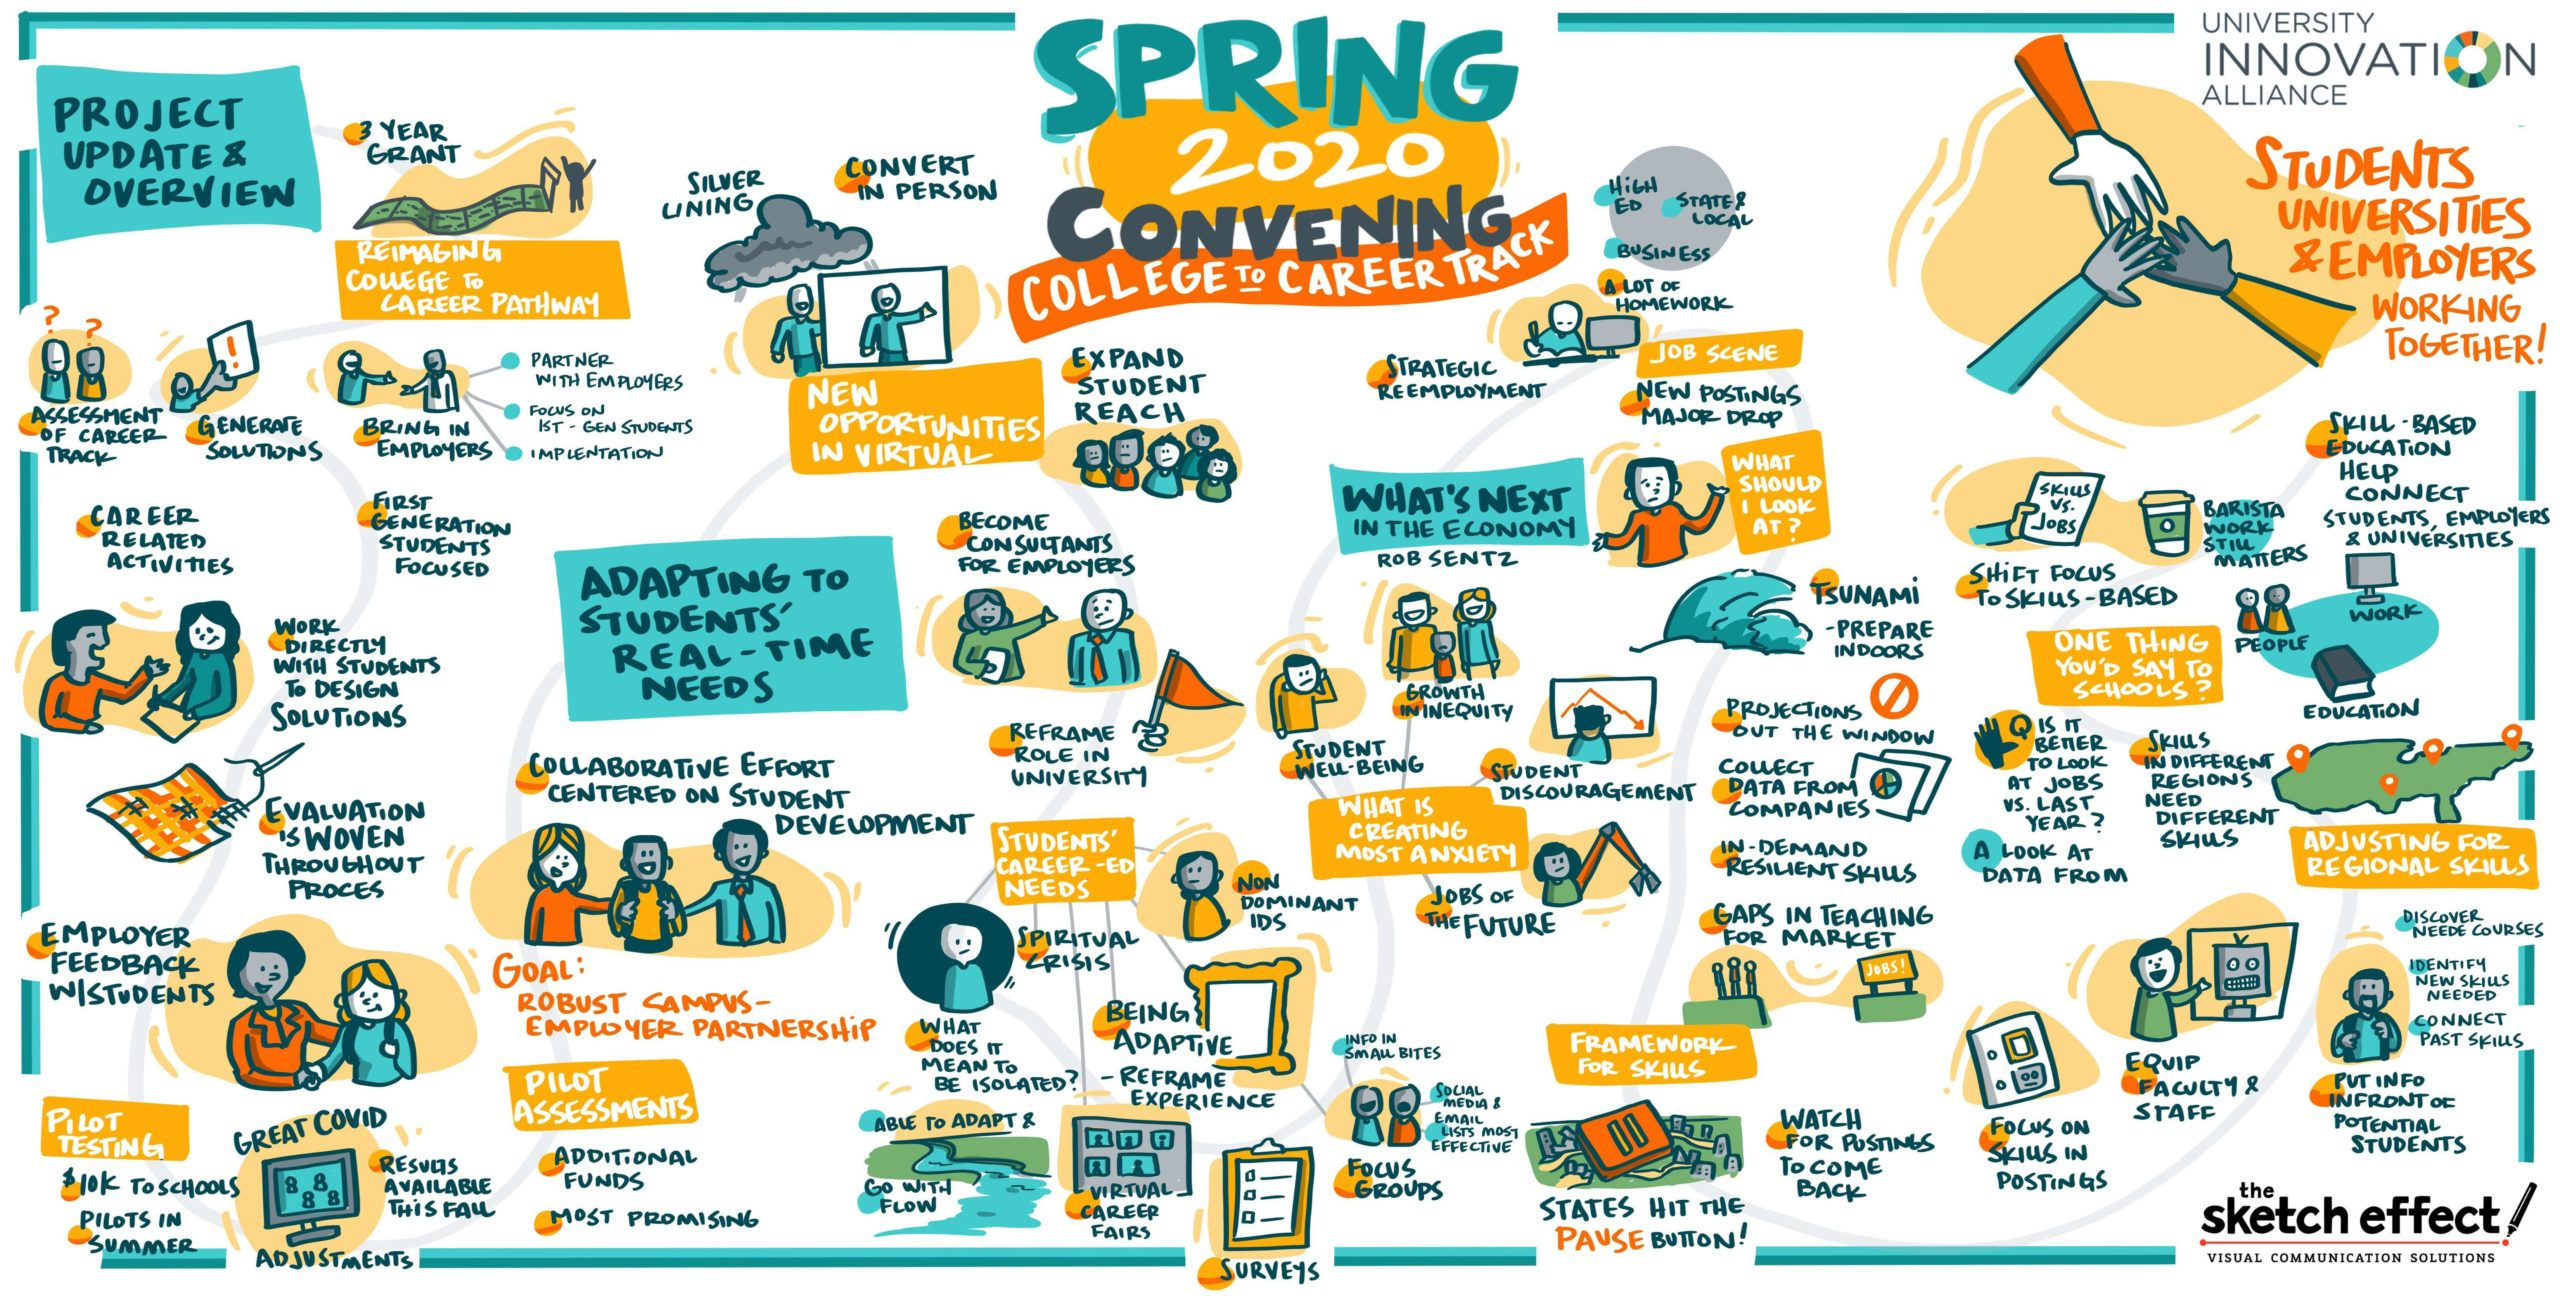 """Graphic recording by The Sketch Effect titled """"Spring 2020 Convening: College to Career Track"""